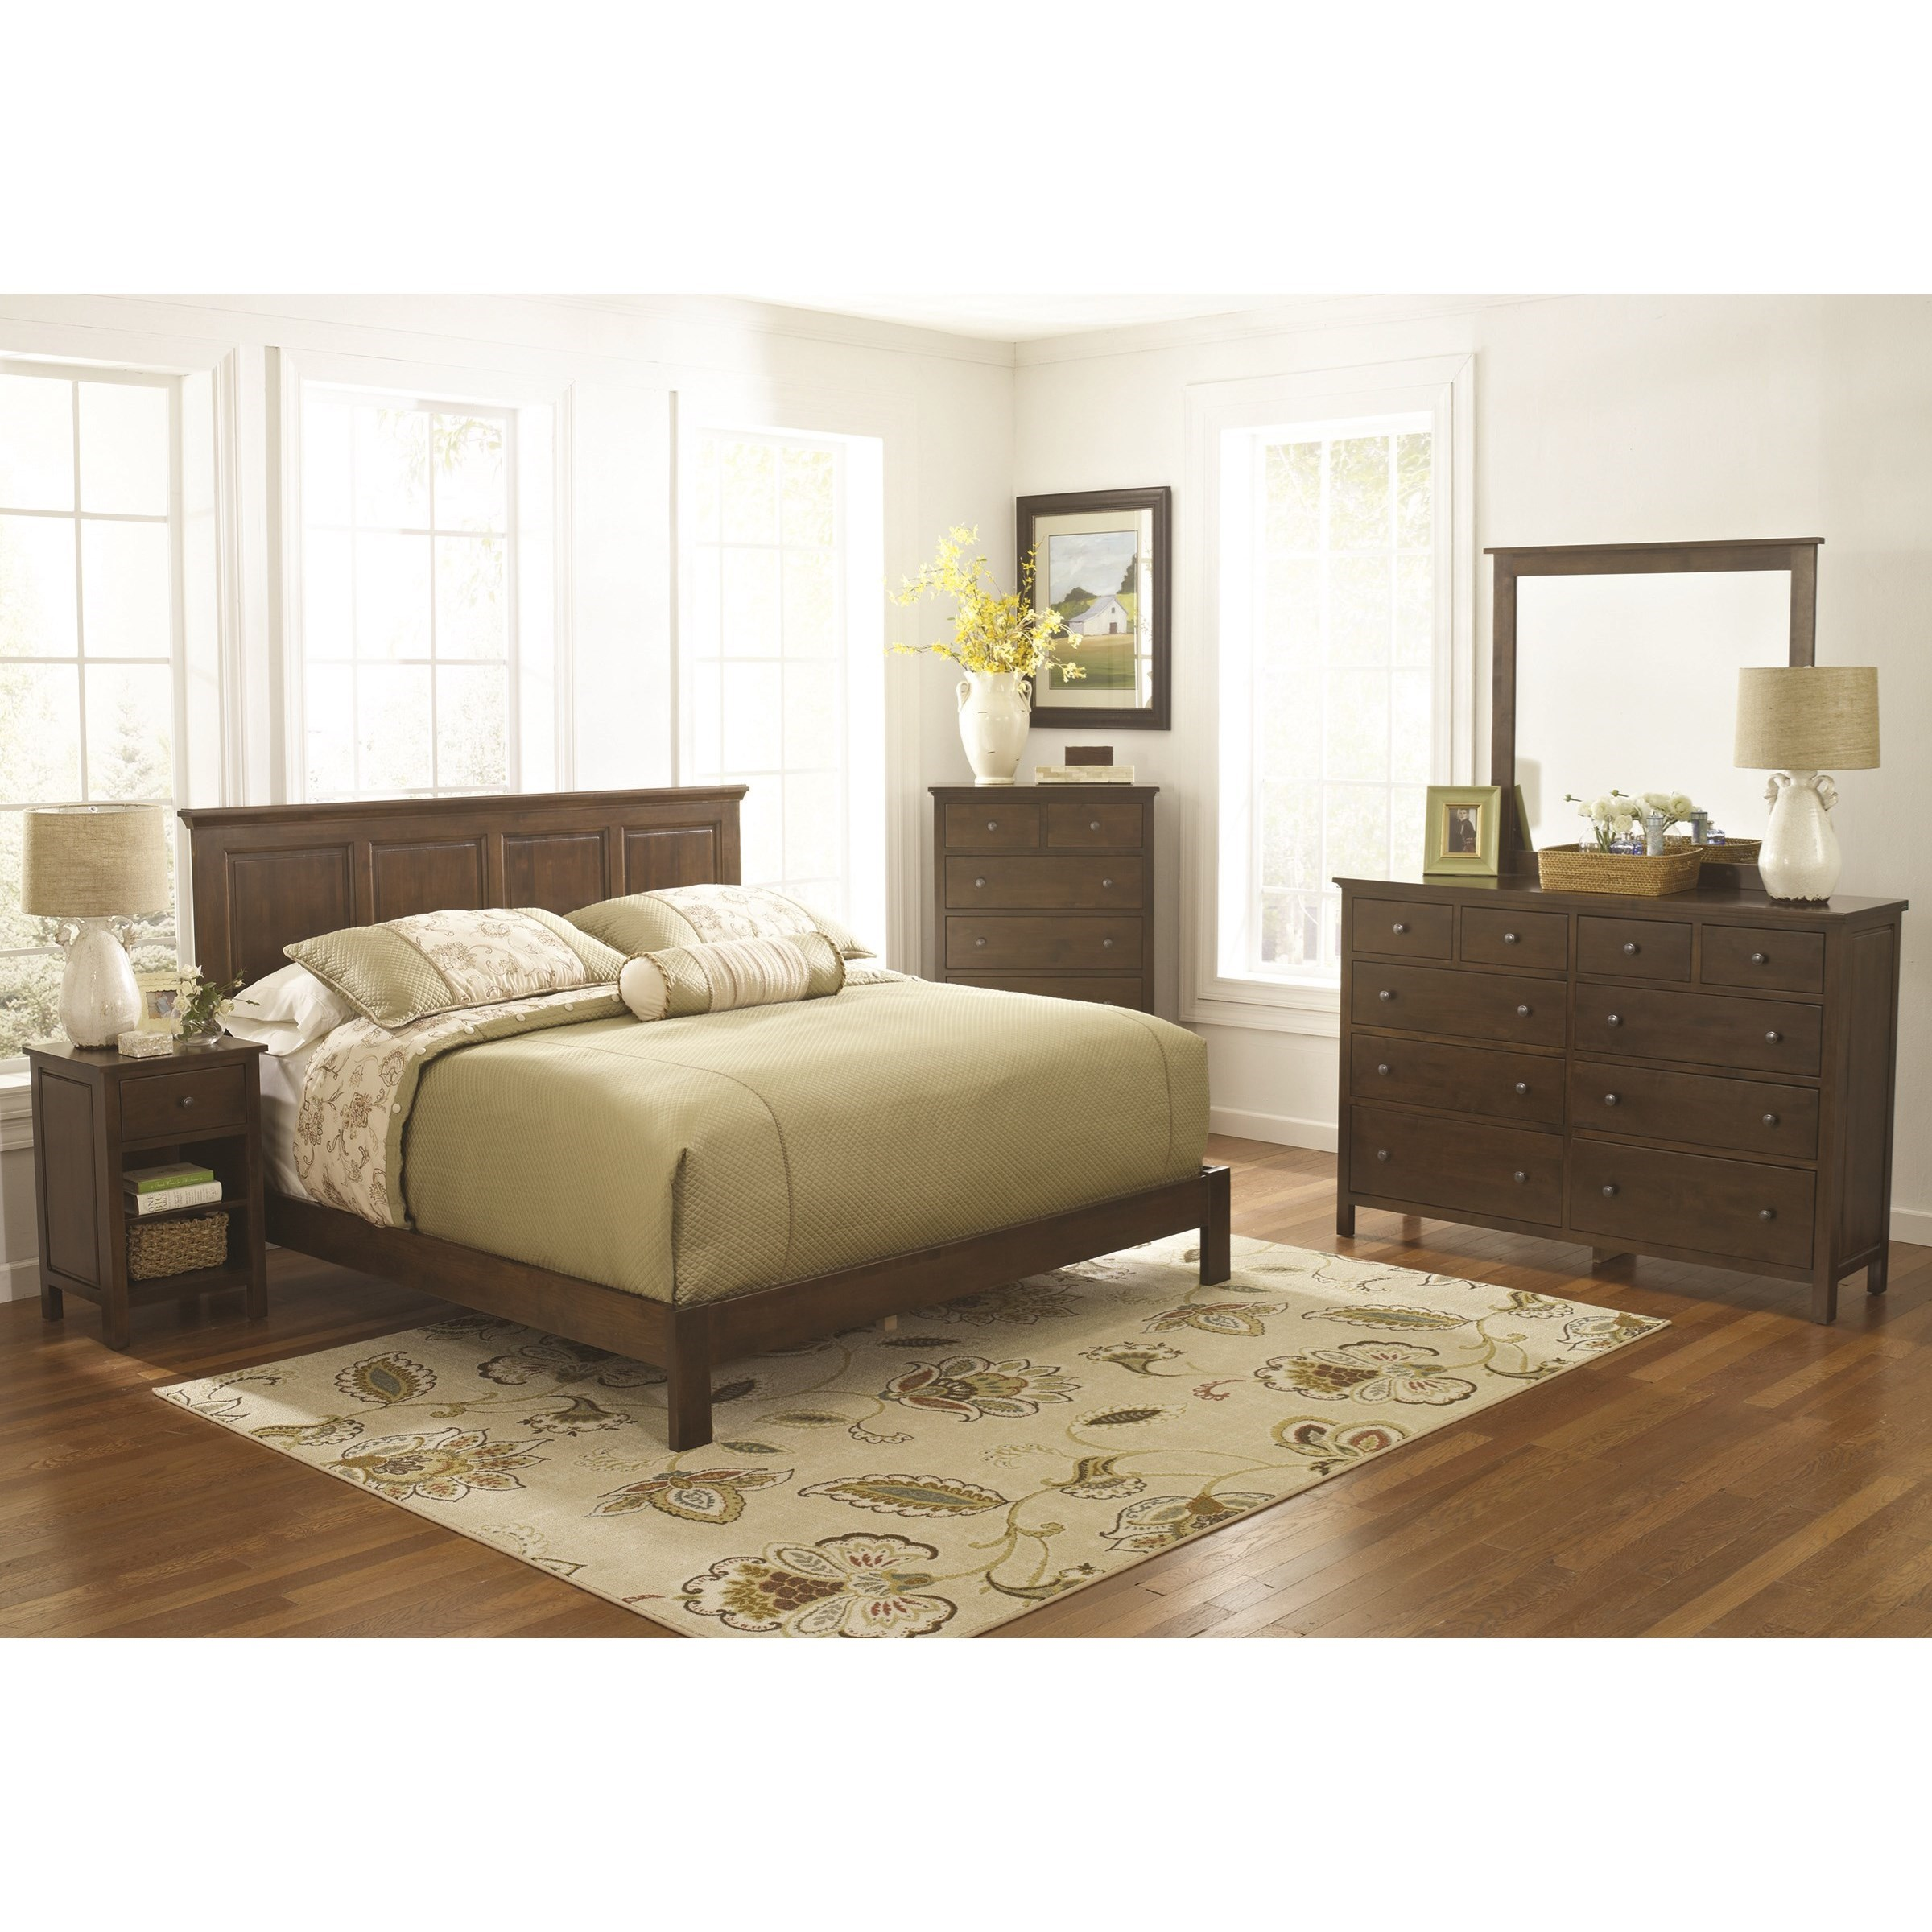 Alder Heritage Raised Panel Bed Bedroom Group by Archbold Furniture at Mueller Furniture